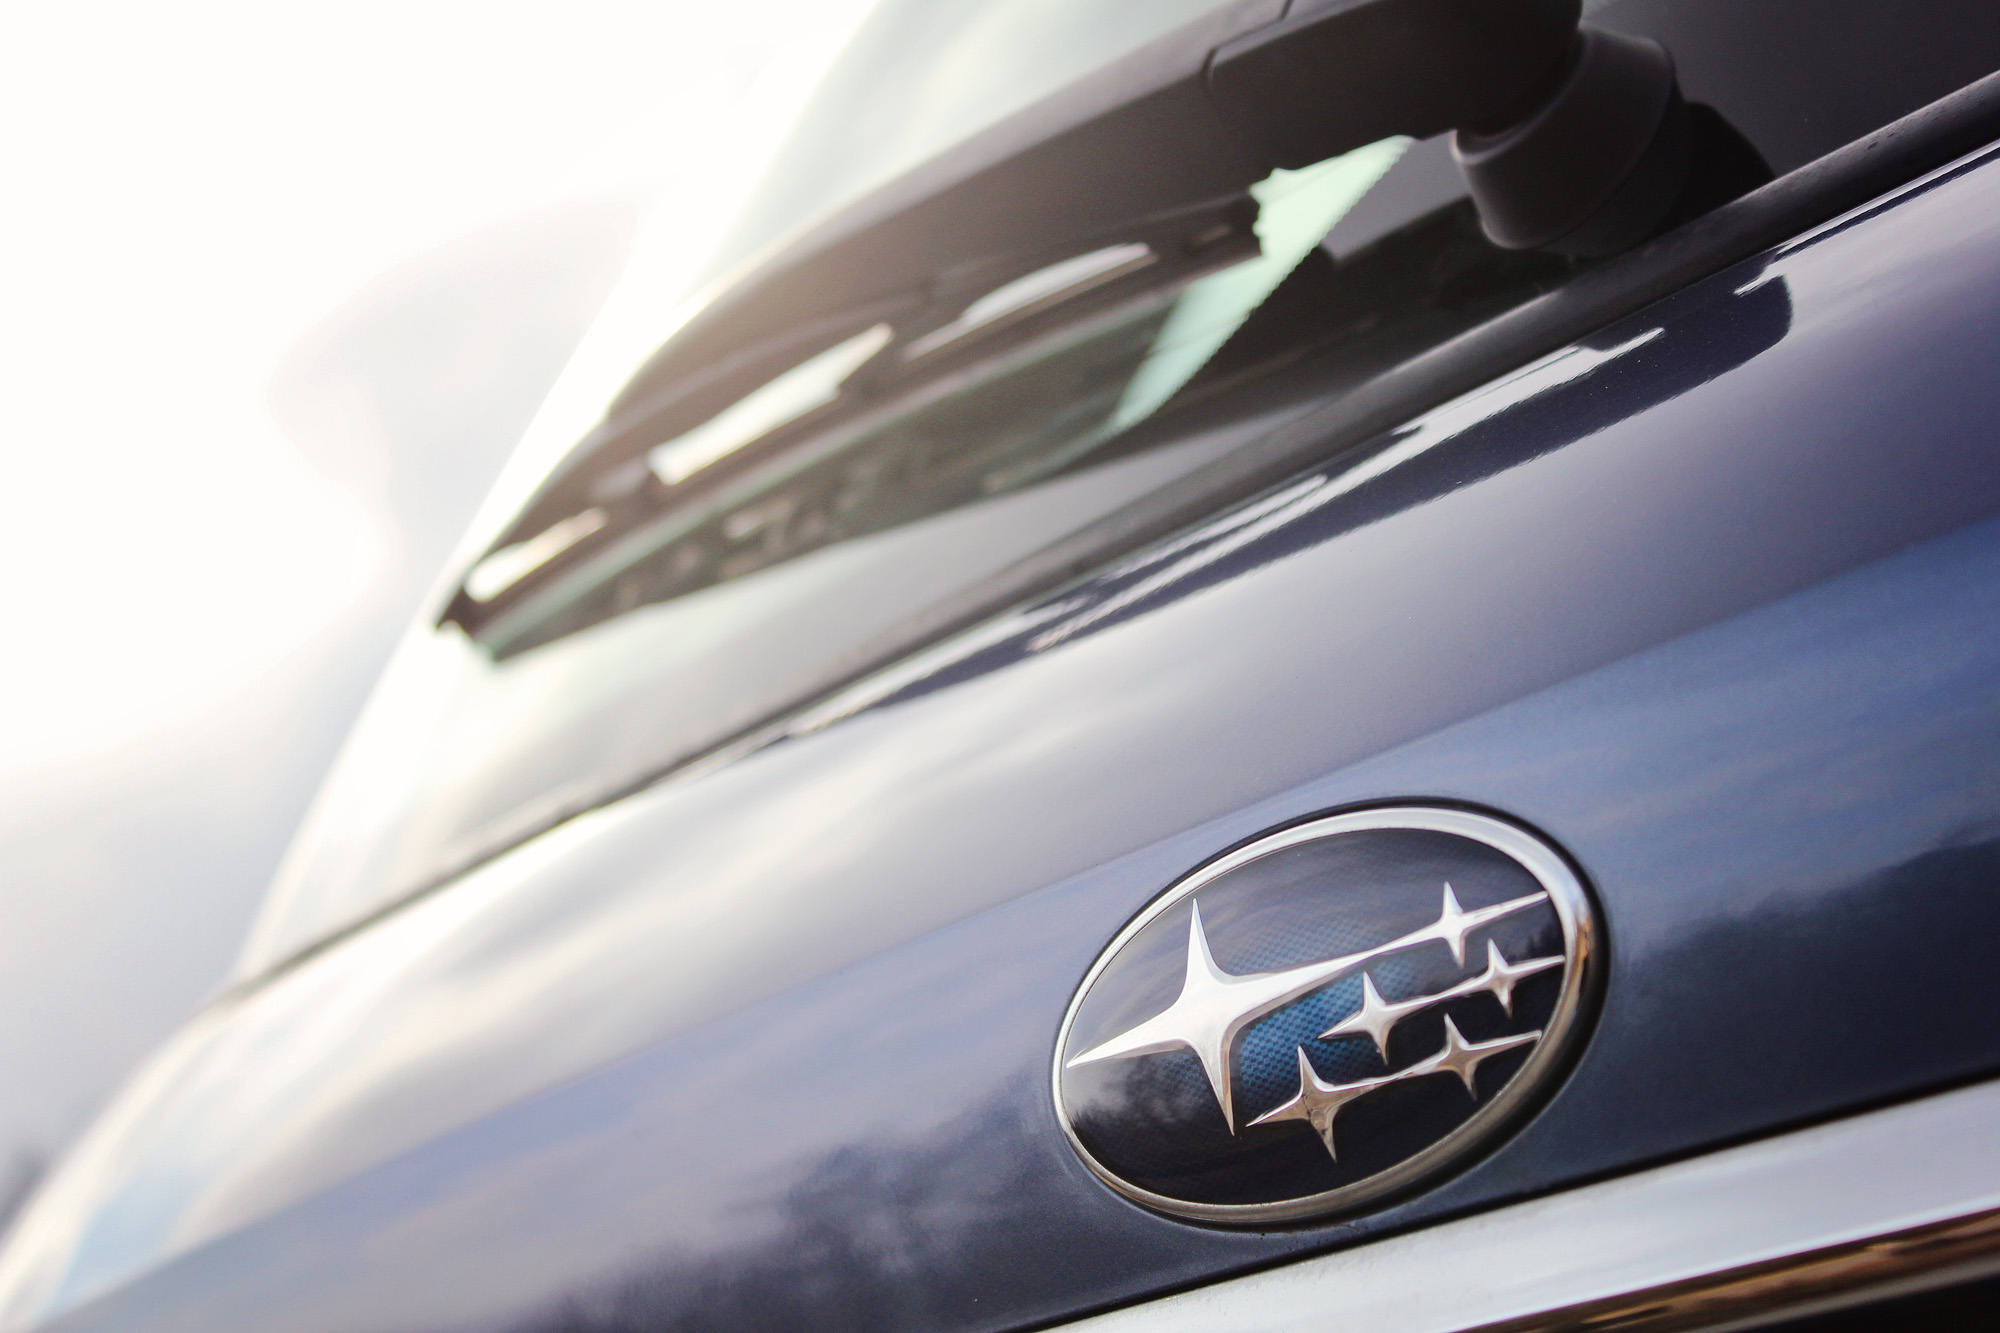 People Can't Stop Buying Subarus – Subaru Sets Sales Record in the US, Canada, and Australia